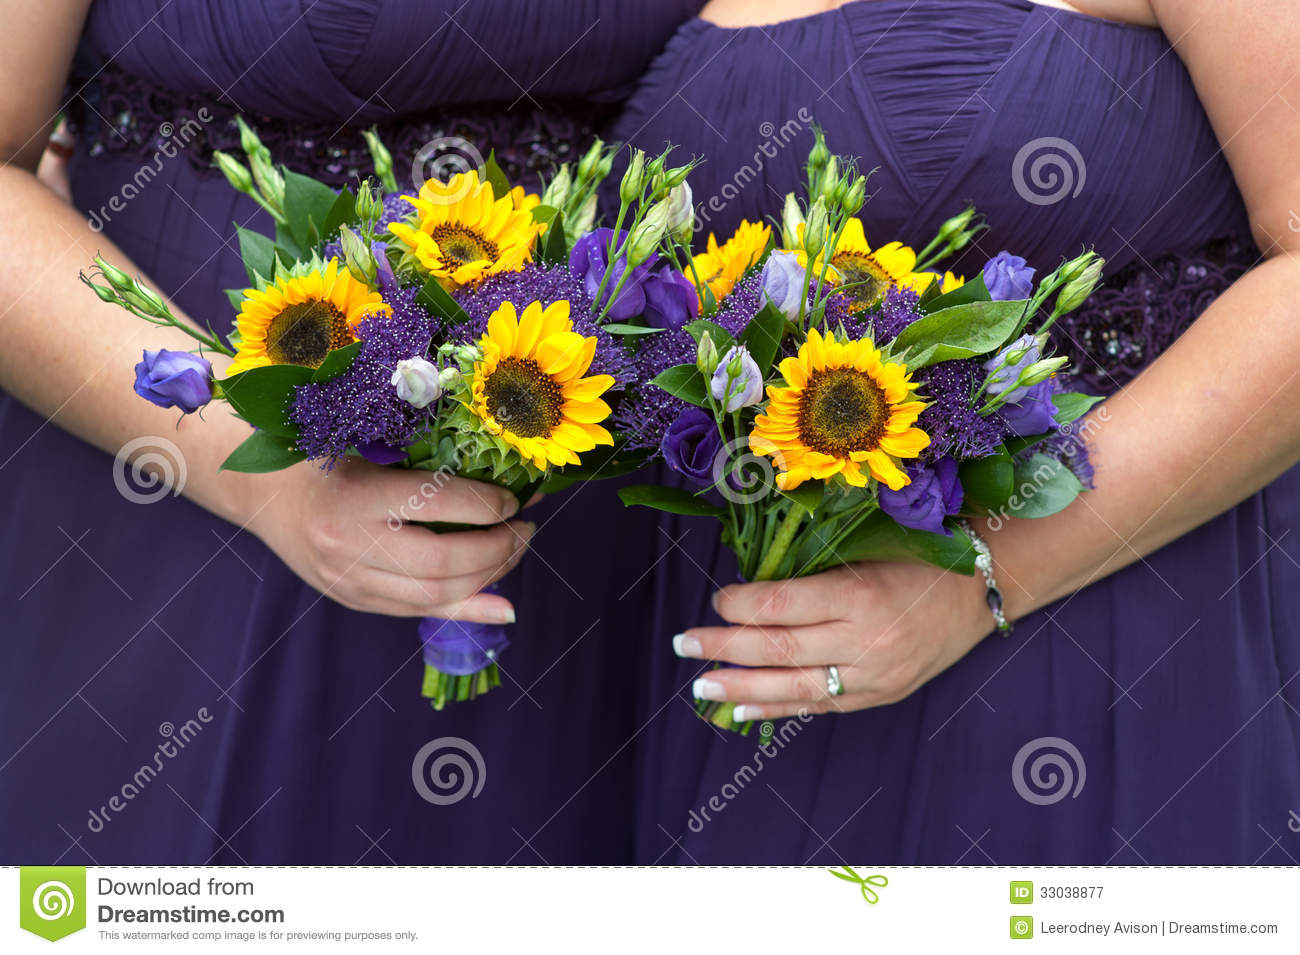 b52acf1d7d0 Bridesmaids In Purple With Sunflower Bouquets Stock Image - Image of ...